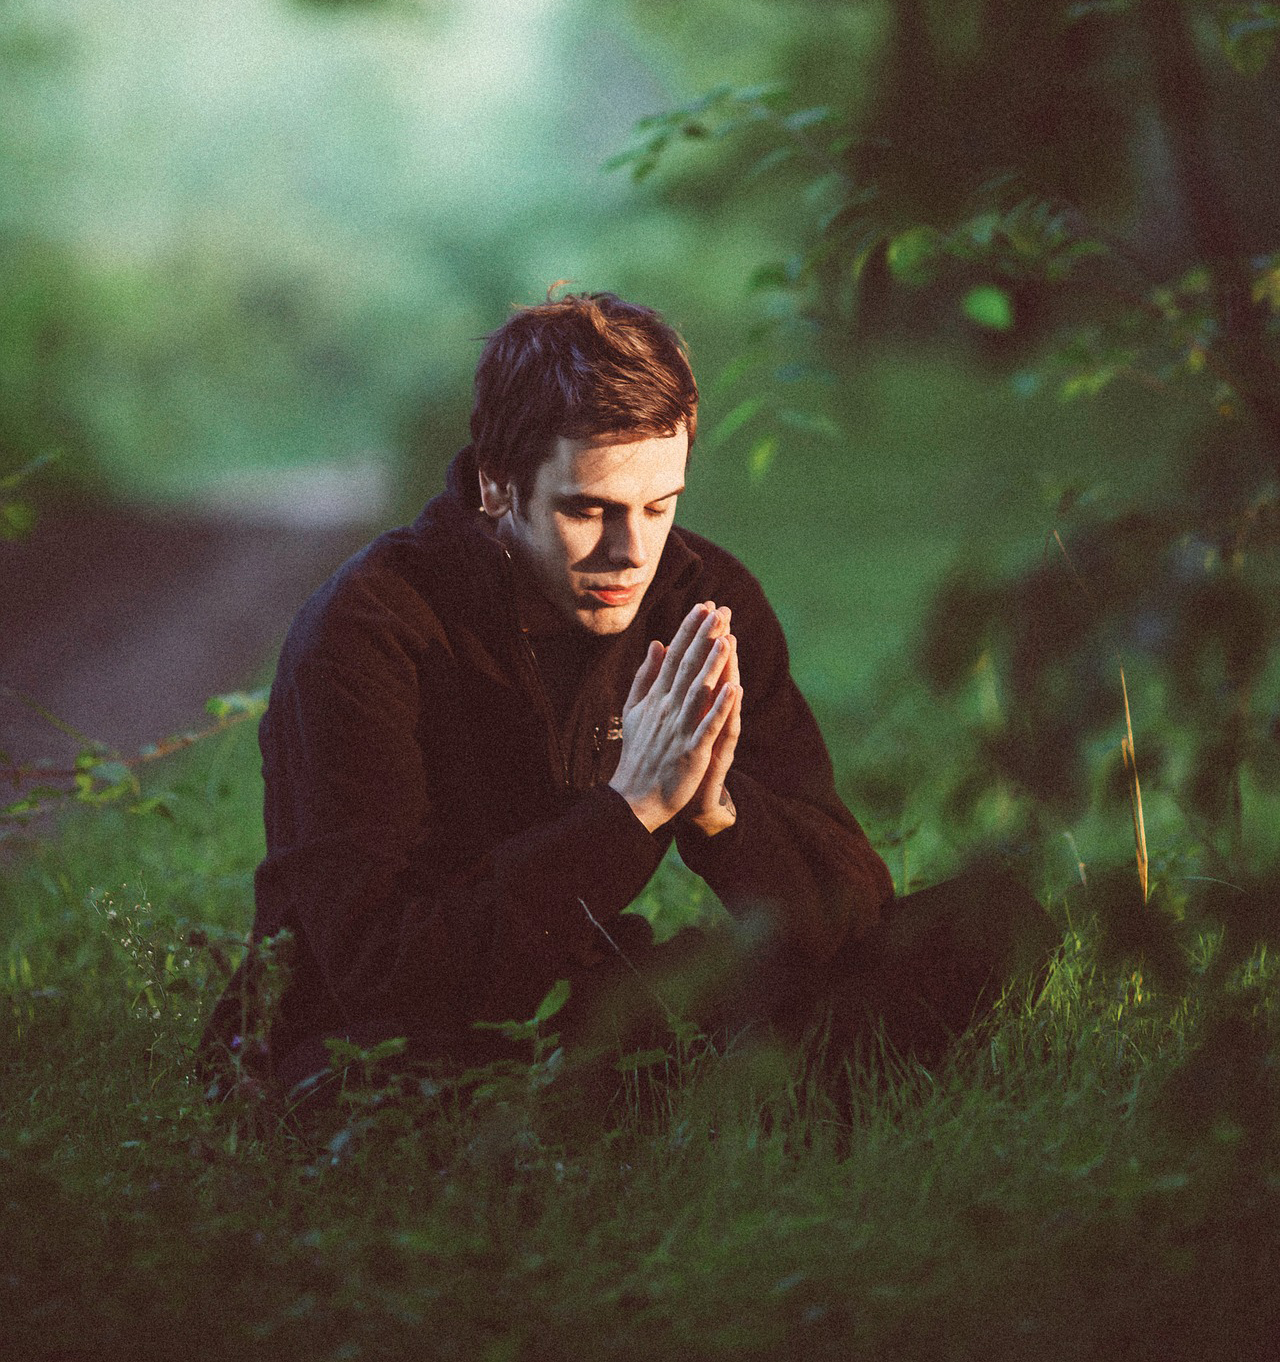 meditation-in-the-forest.jpg